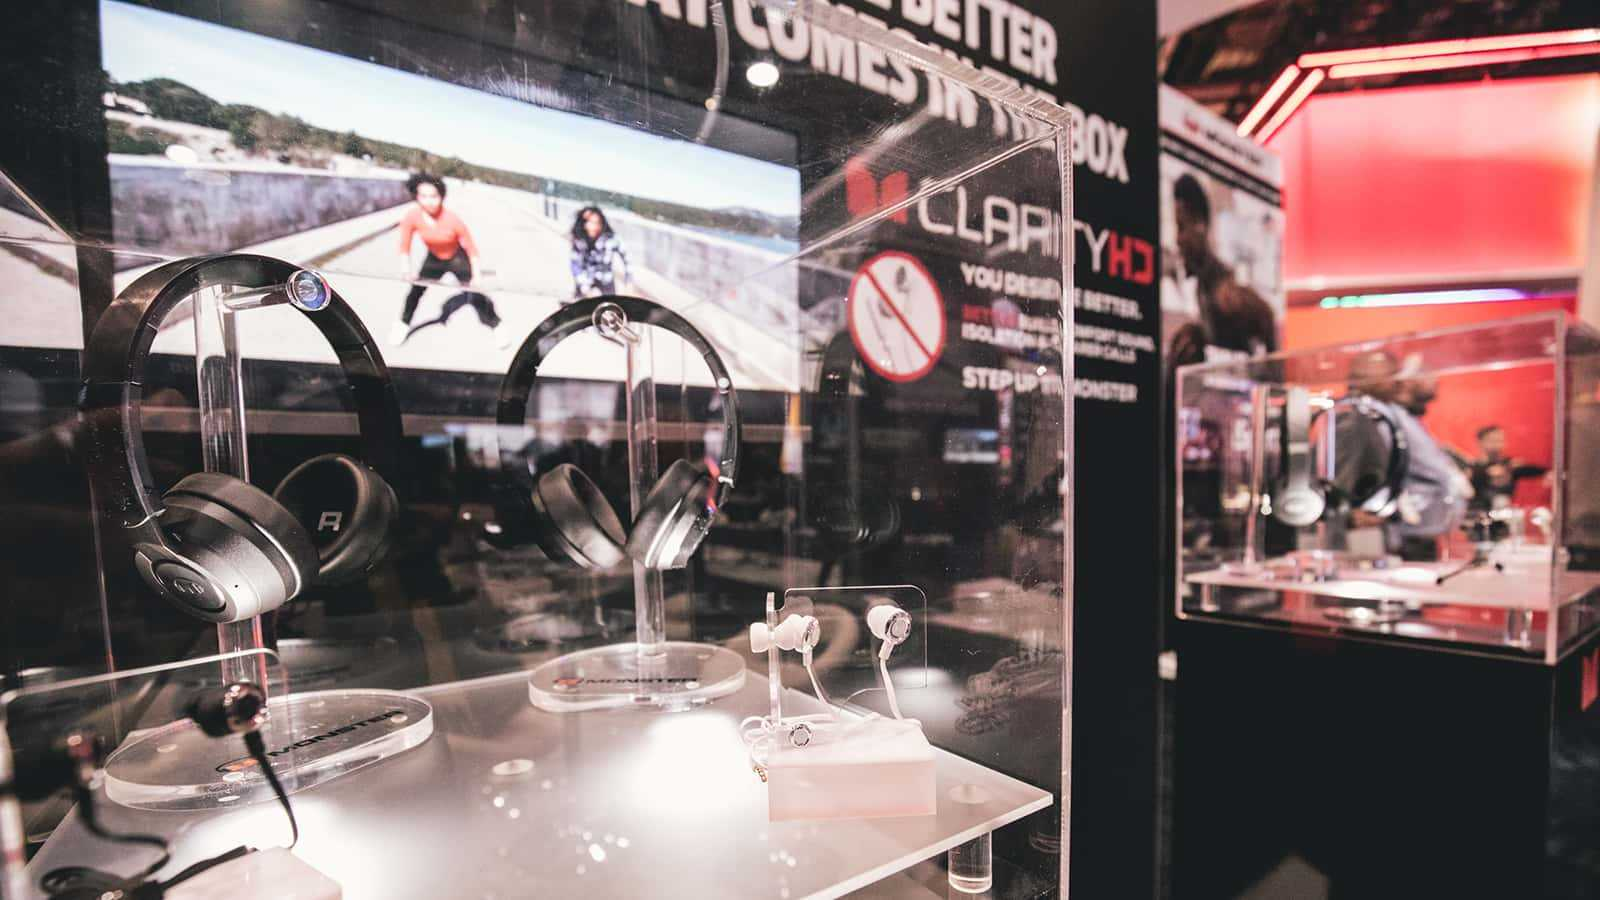 Product display close-up at the Monster CES 2018 experience.